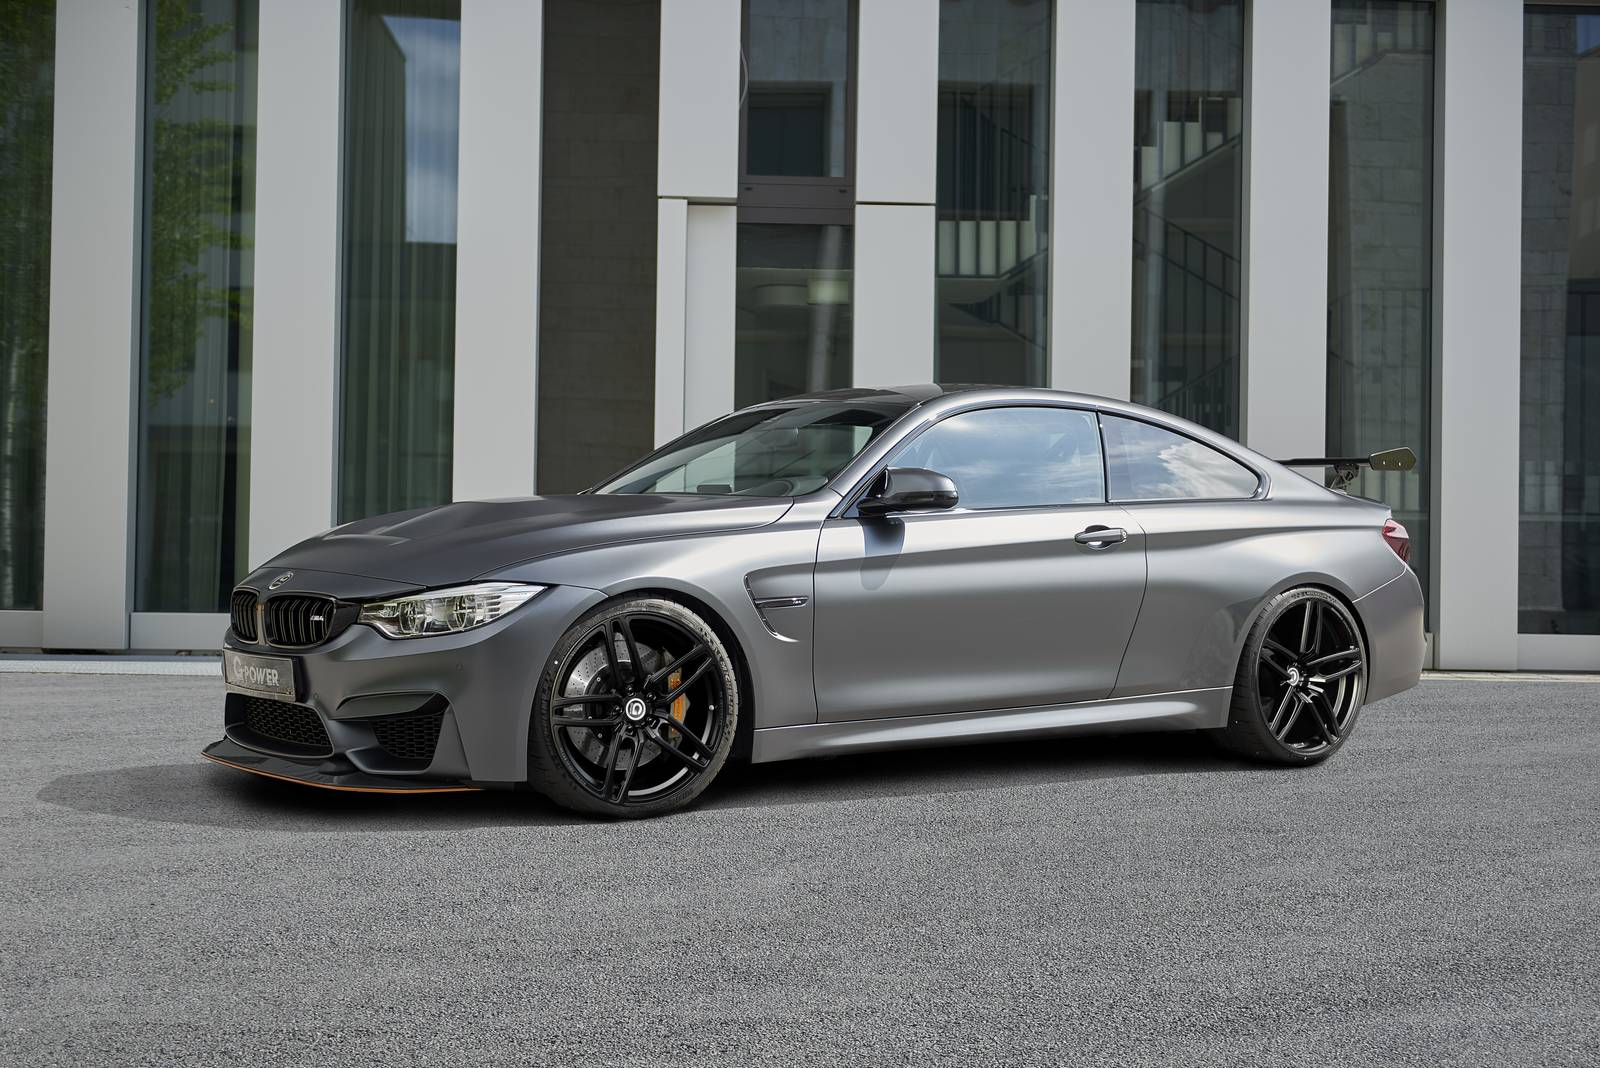 official 615hp g power bmw m4 gts gtspirit. Black Bedroom Furniture Sets. Home Design Ideas